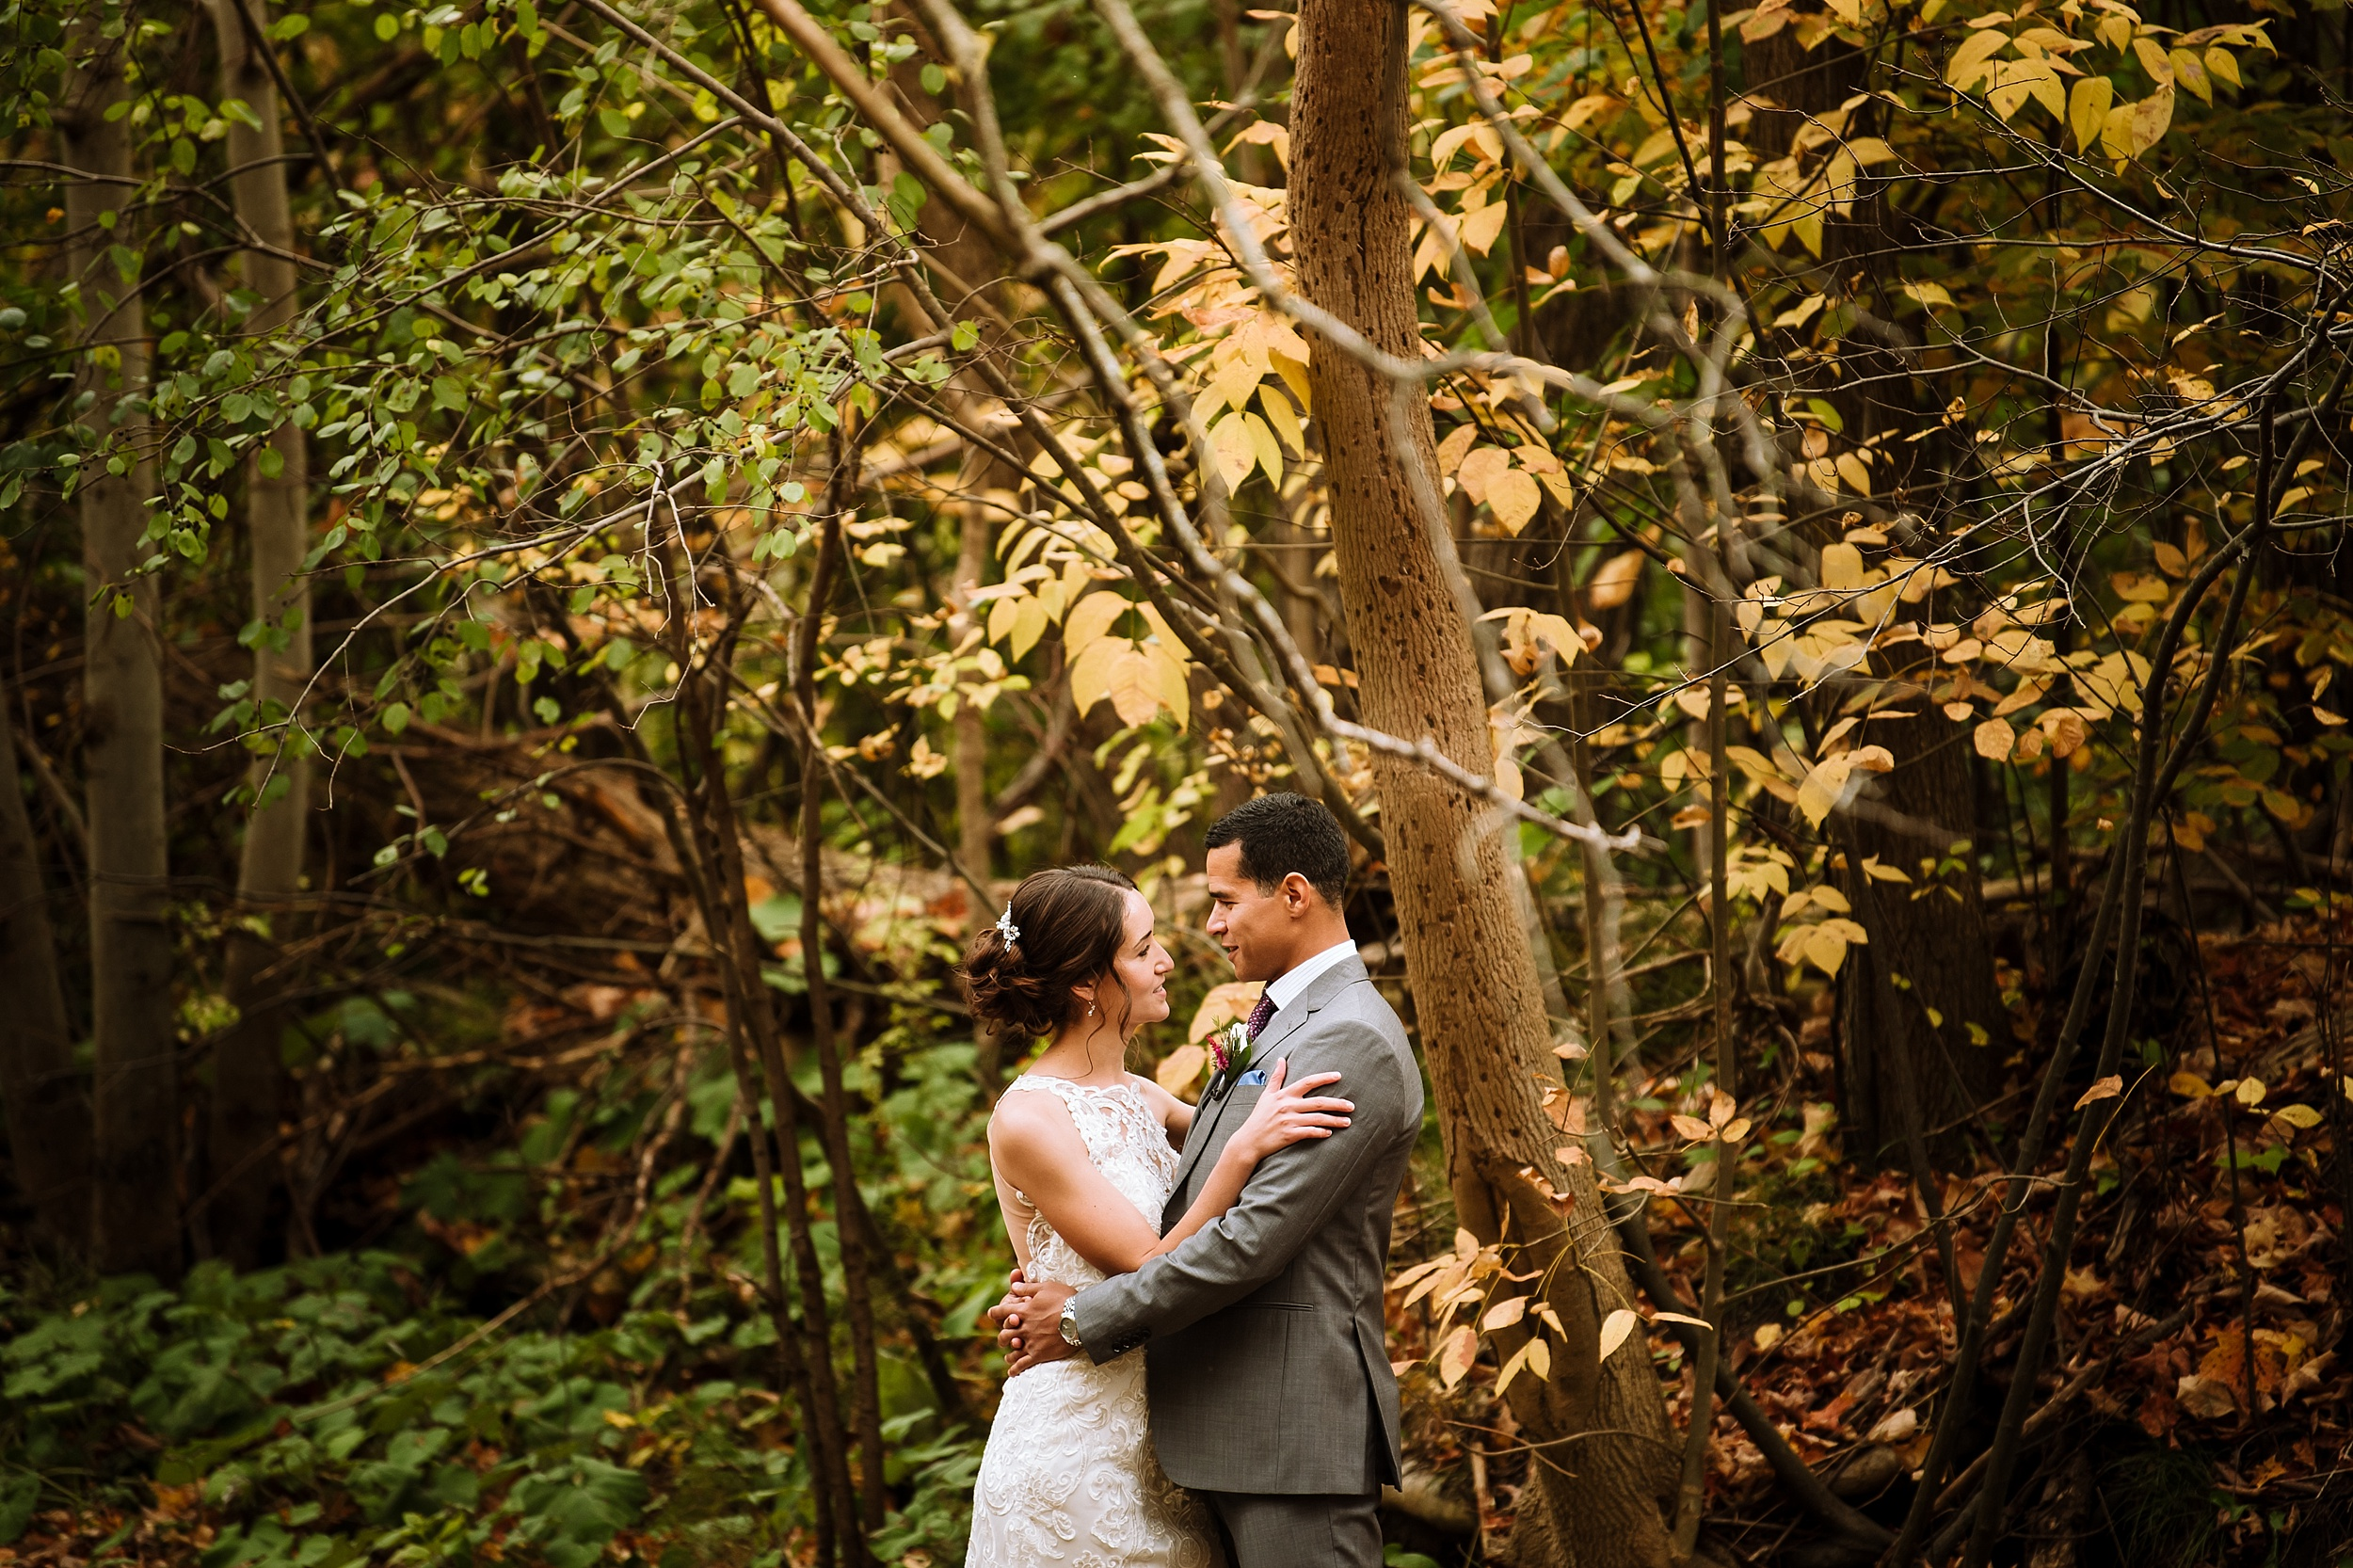 Toronto_Wedding_Photographer_Edwards_Gardens_0047.jpg